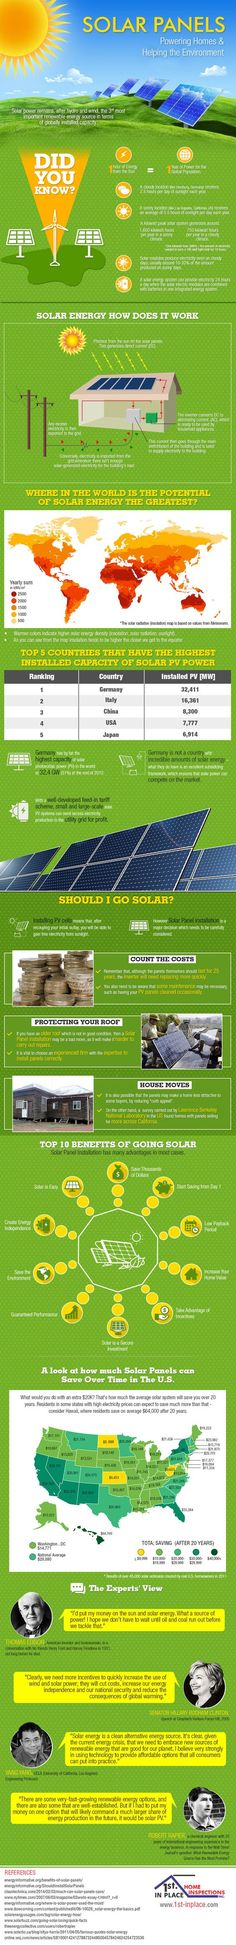 Advantages Of Solar Energy Infographic | Blog | 123SolarPower: